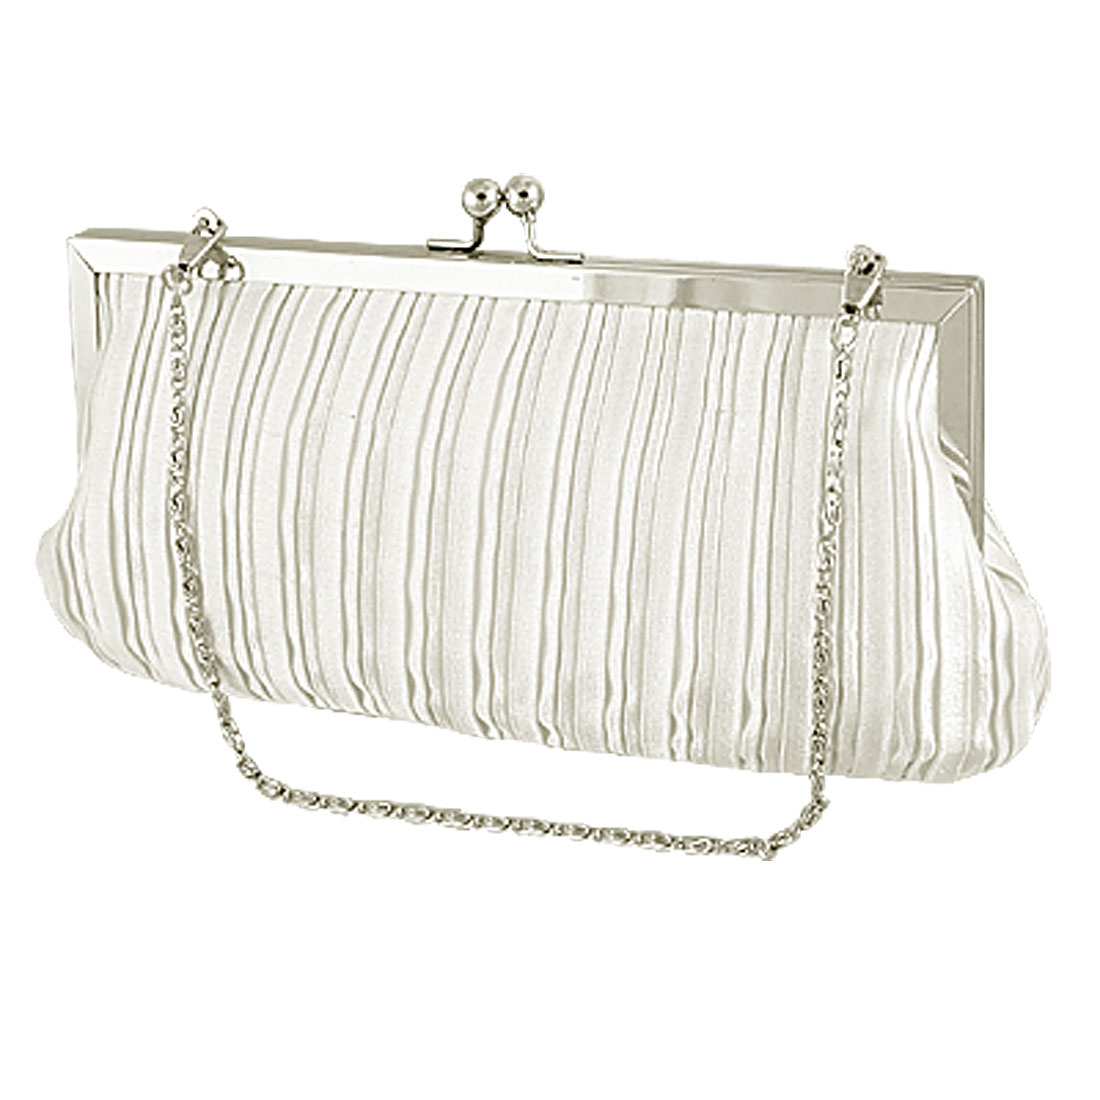 Women Kiss Lock Fastener White Evening Banquet Bag w Chain Strap